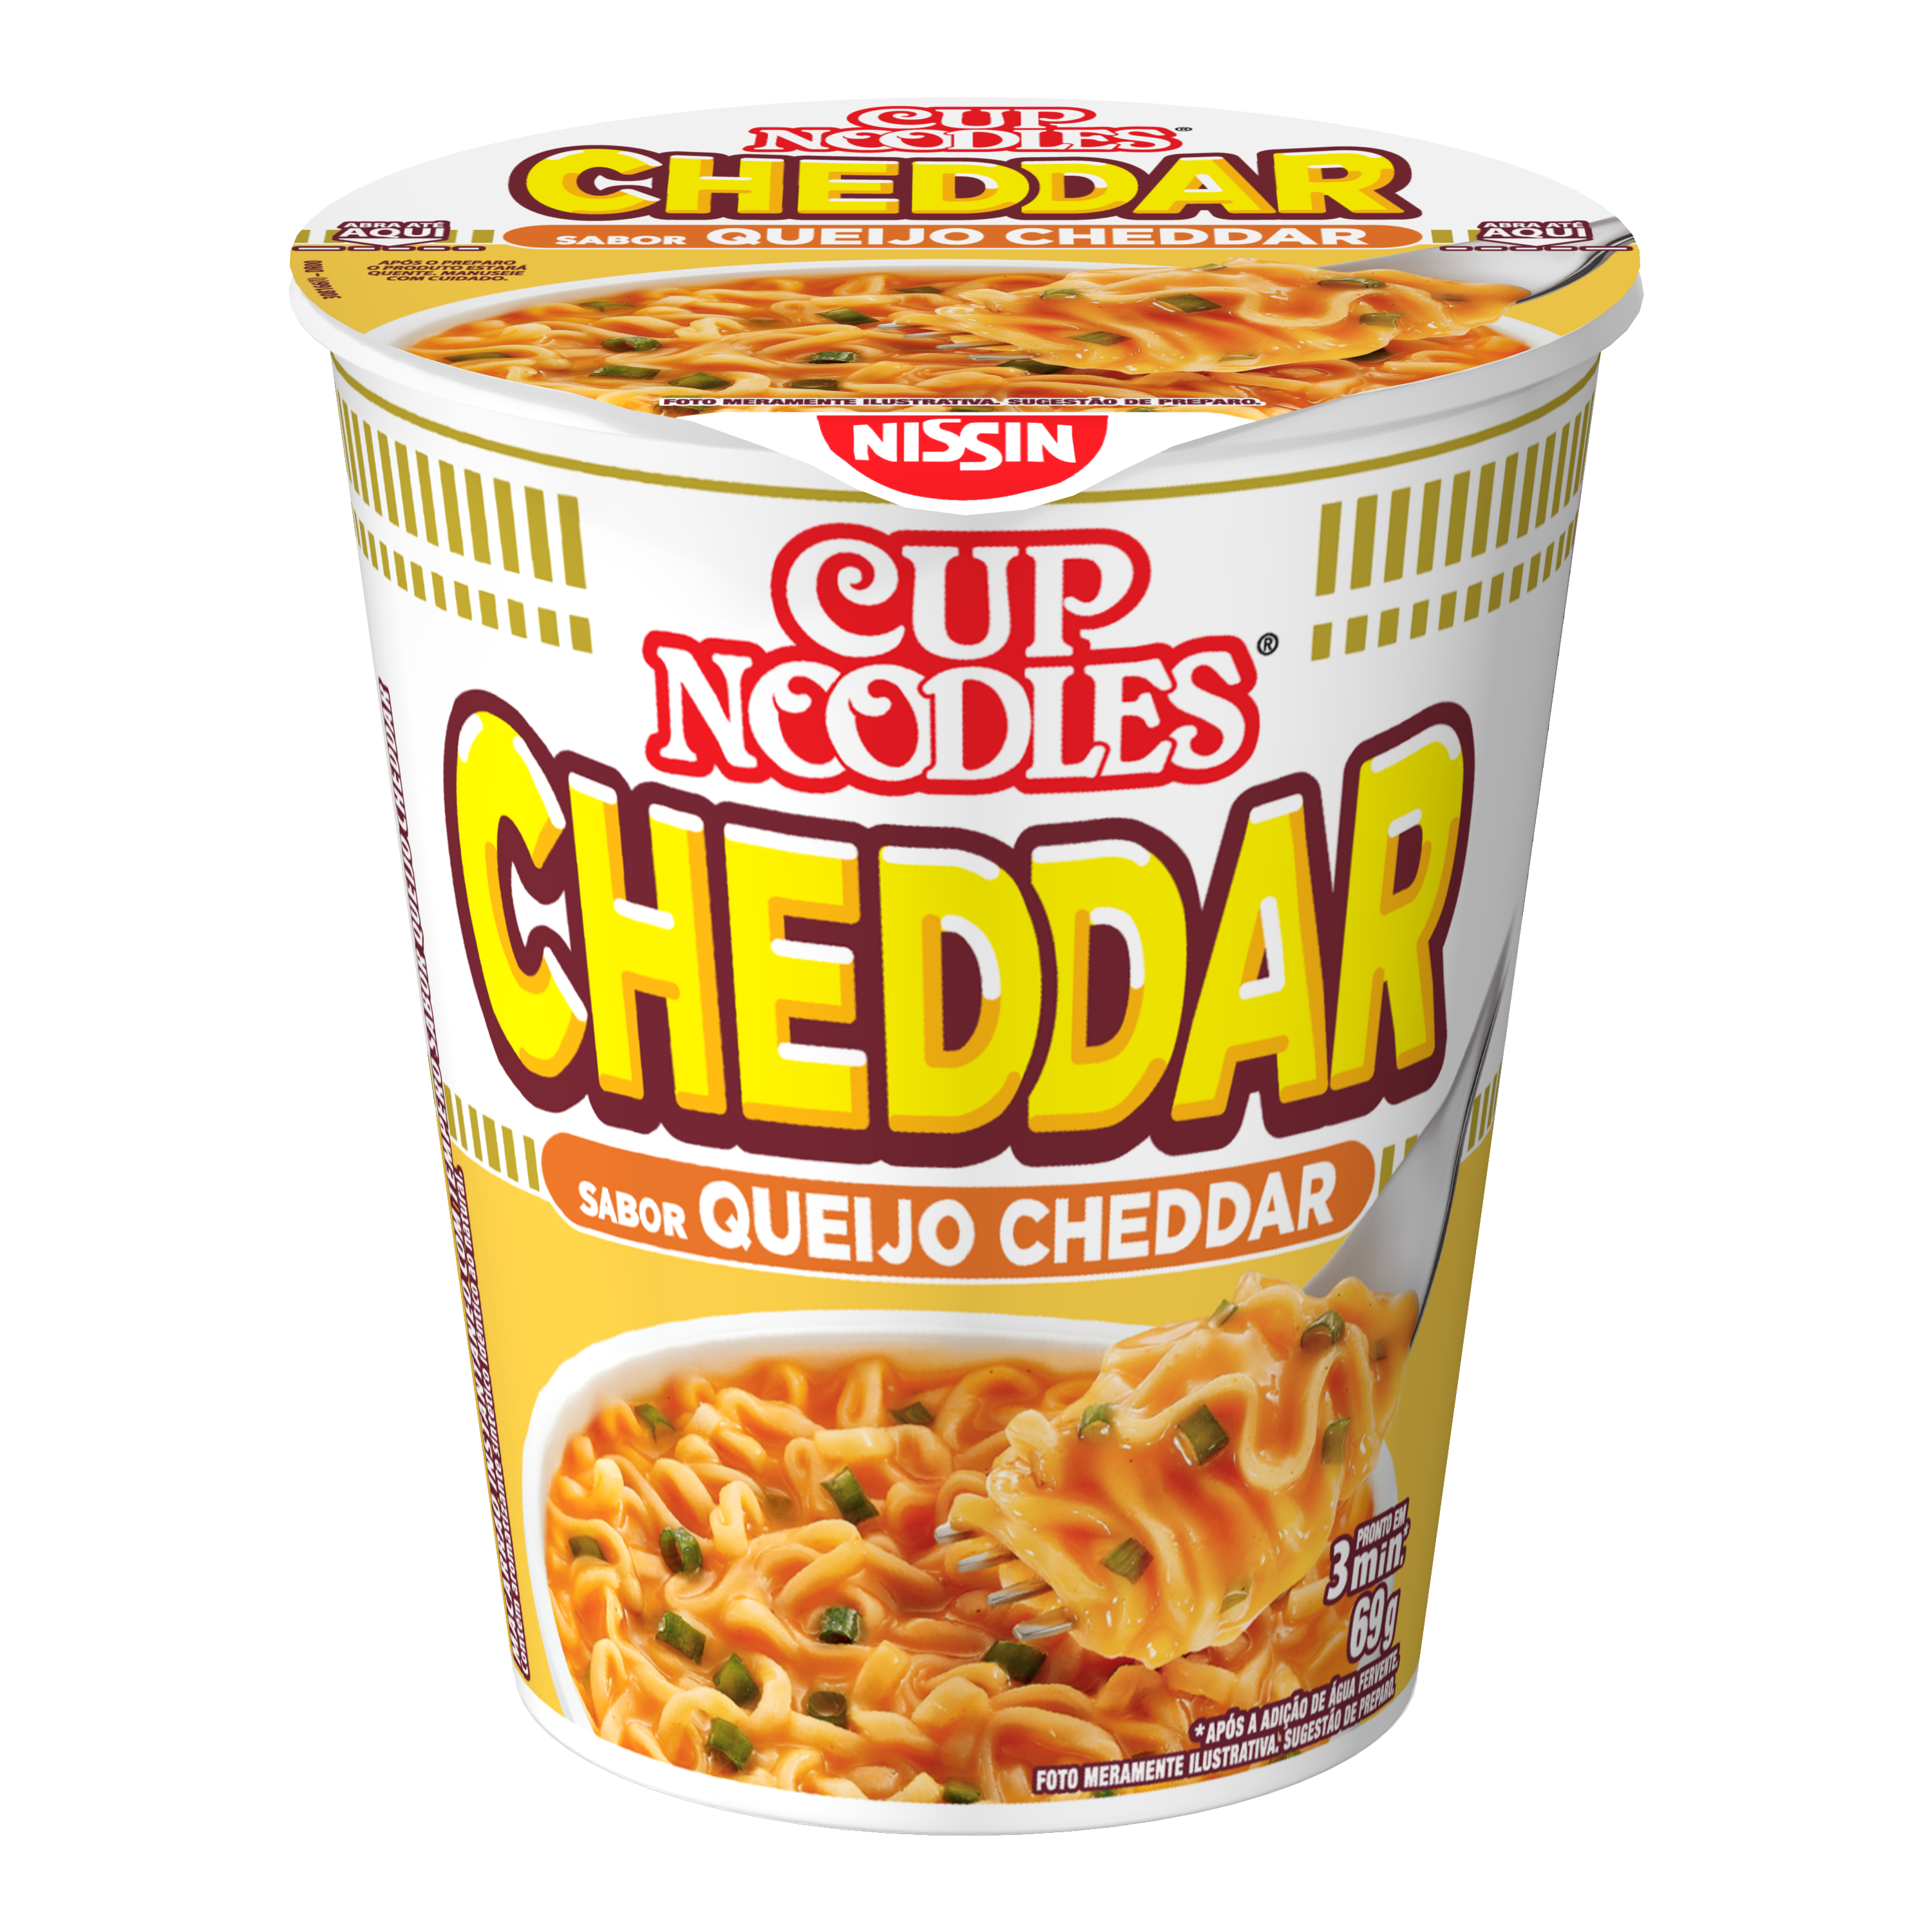 NISSIN CUP NOODLES CHEDDAR 1X69G (24)